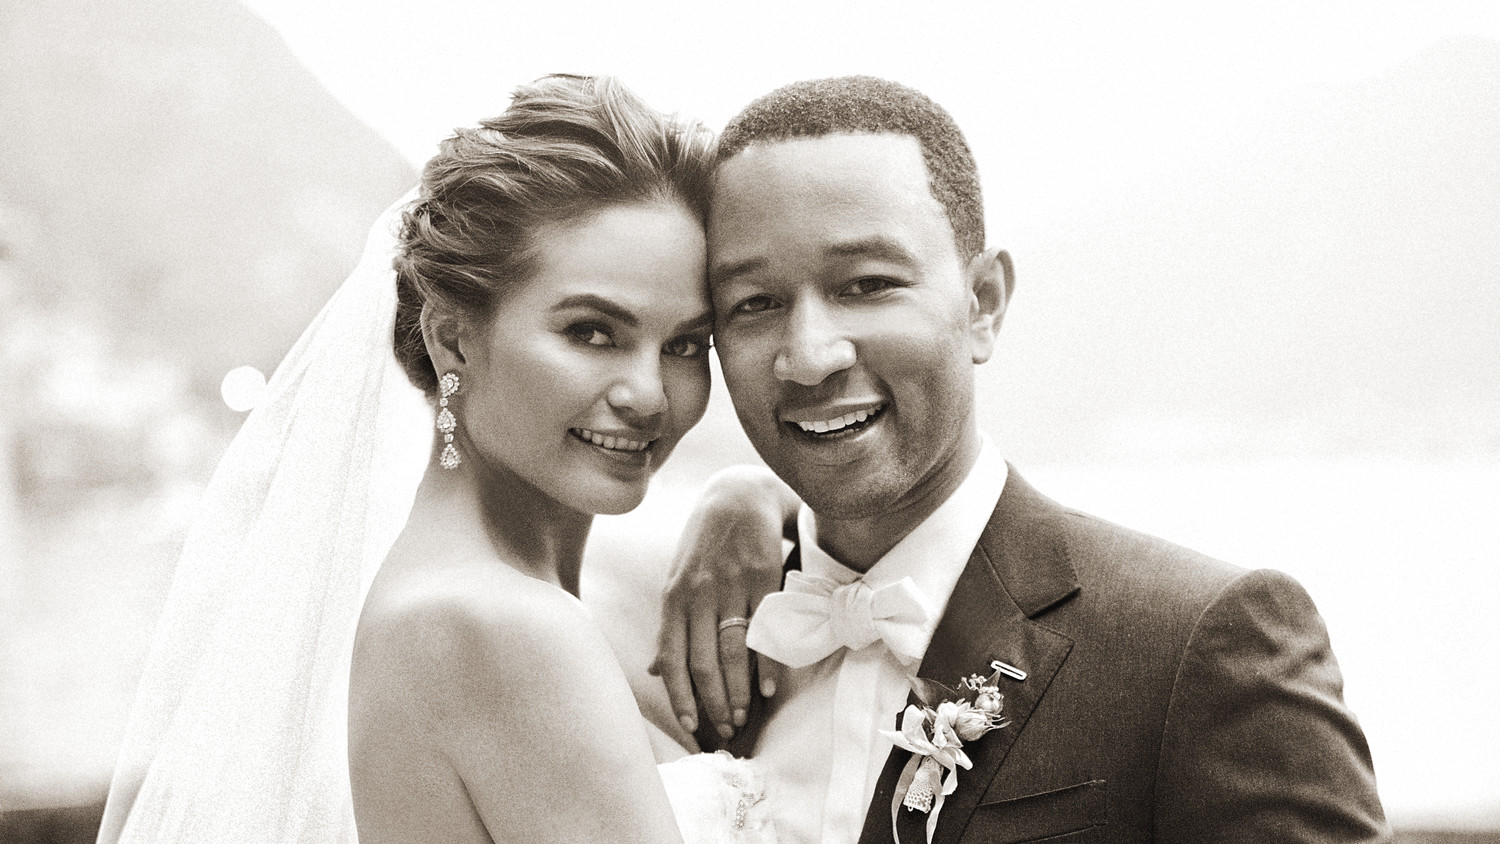 Exclusive: Chrissy Teigen And John Legend's Formal